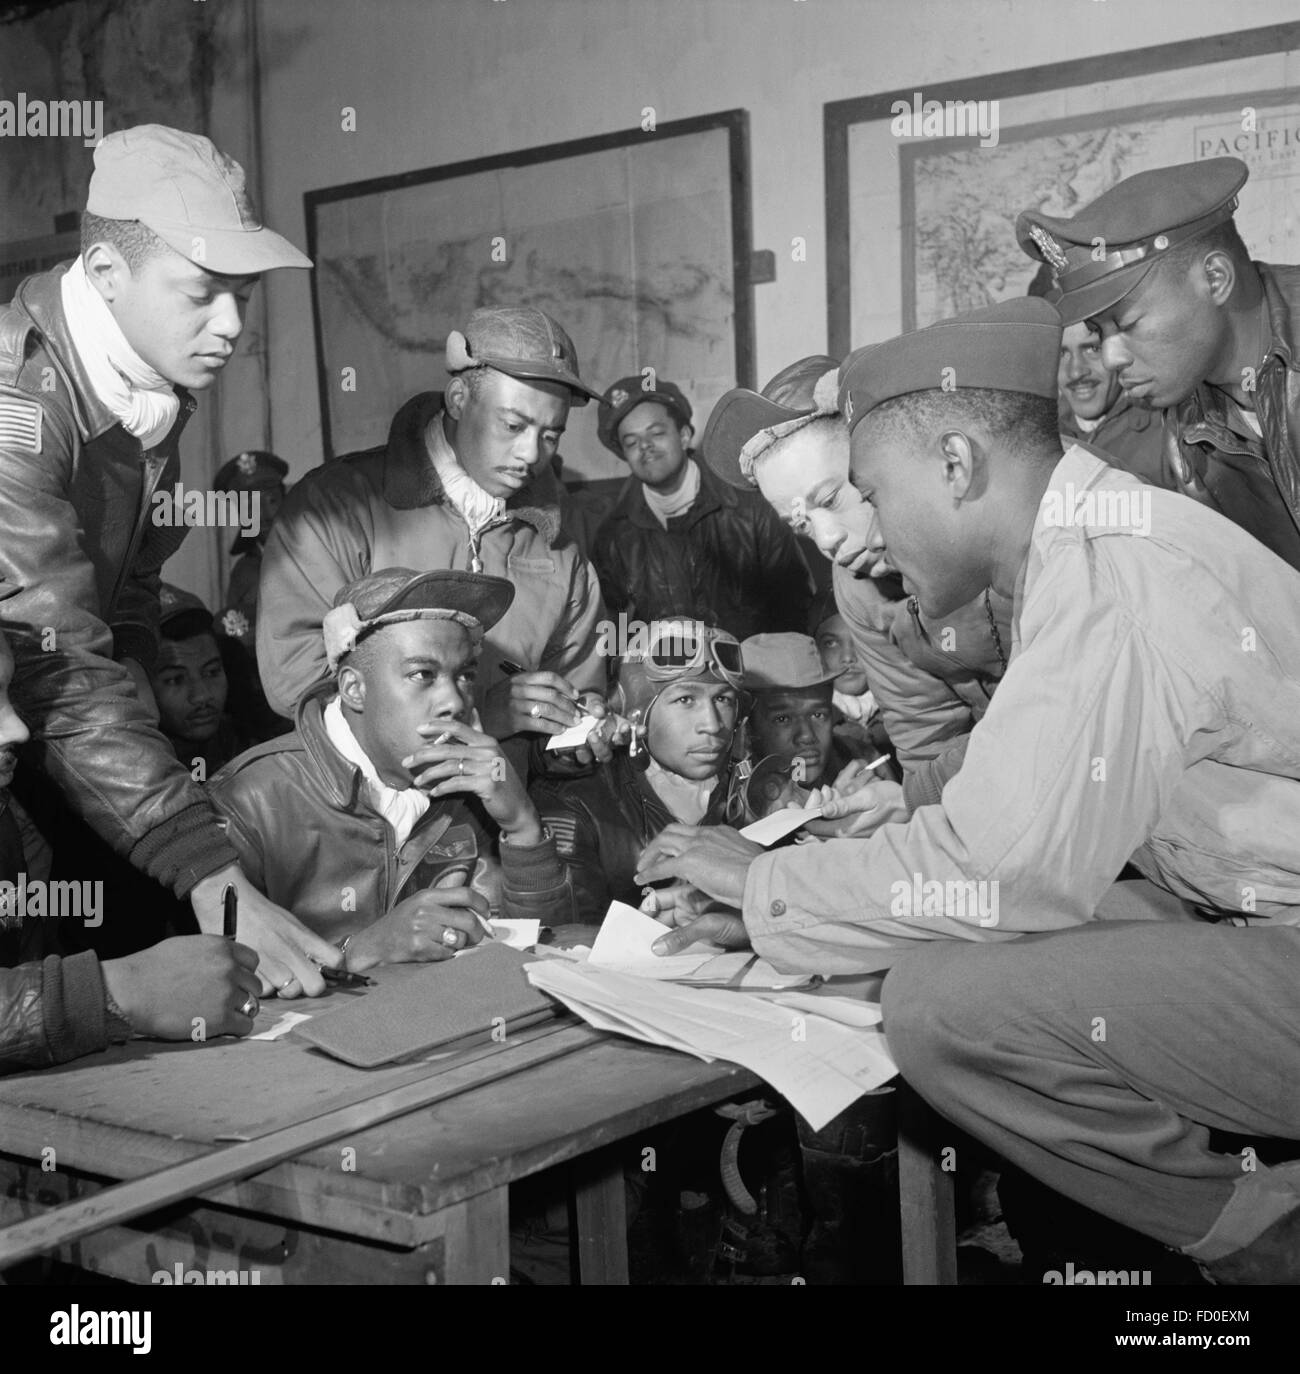 Tuskegee airmen from the 332nd Fighter Group receiving a briefing in Ramitelli, Italy in March 1945. - Stock Image